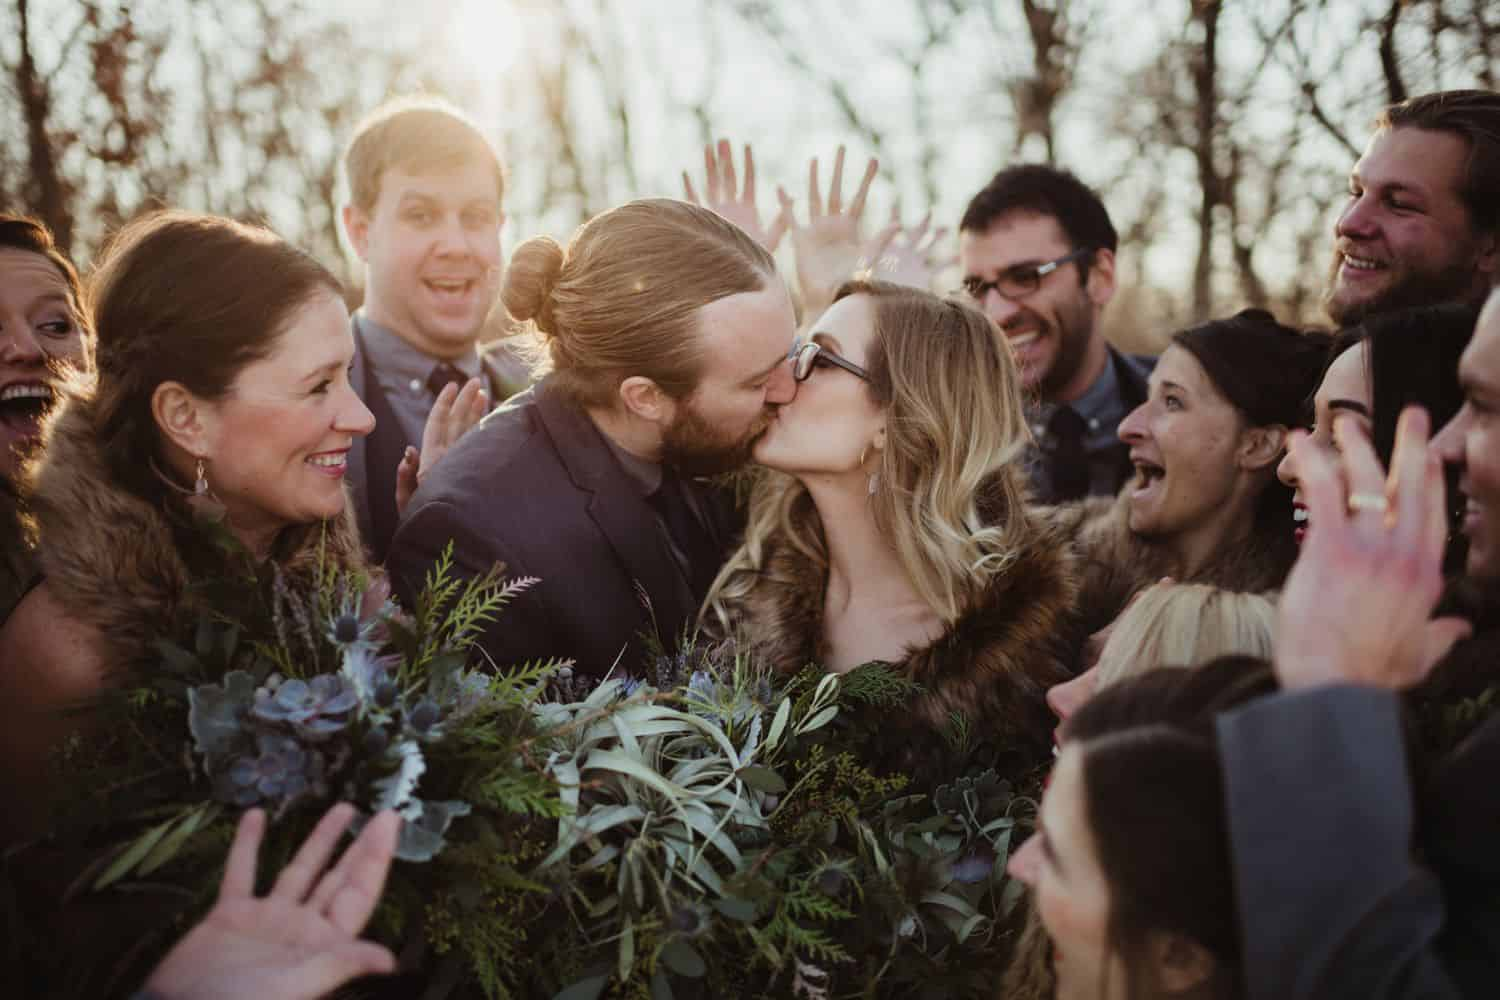 bride in a fur stole kisses her new husband while the wedding party cheers around them